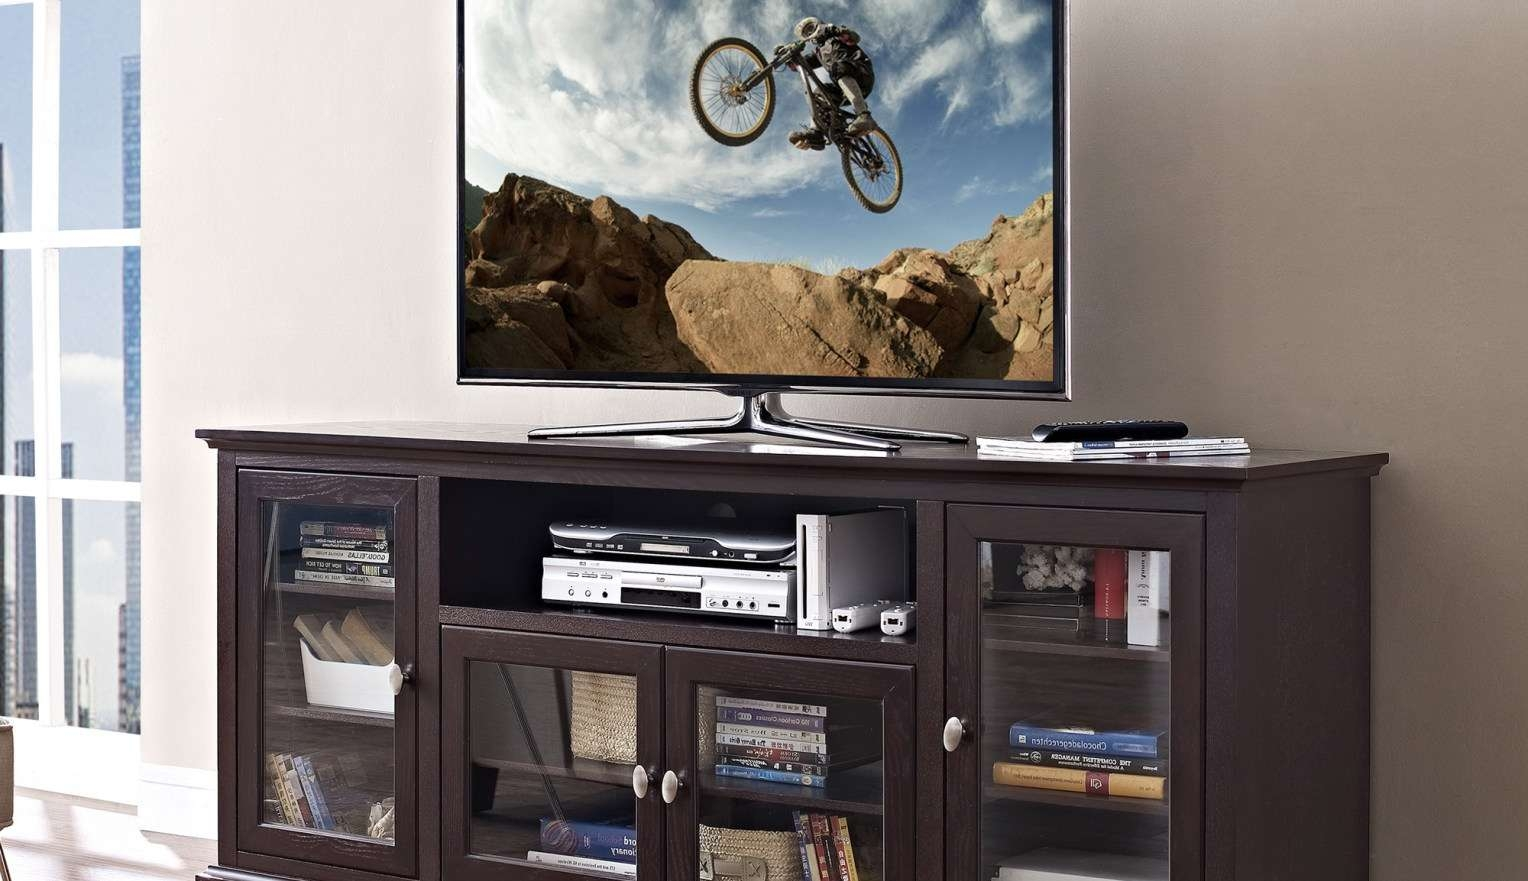 Tv : Astounding Corner Tv Stands For 46 Inch Flat Screen Satiating With Regard To Corner Tv Stands 46 Inch Flat Screen (View 8 of 15)